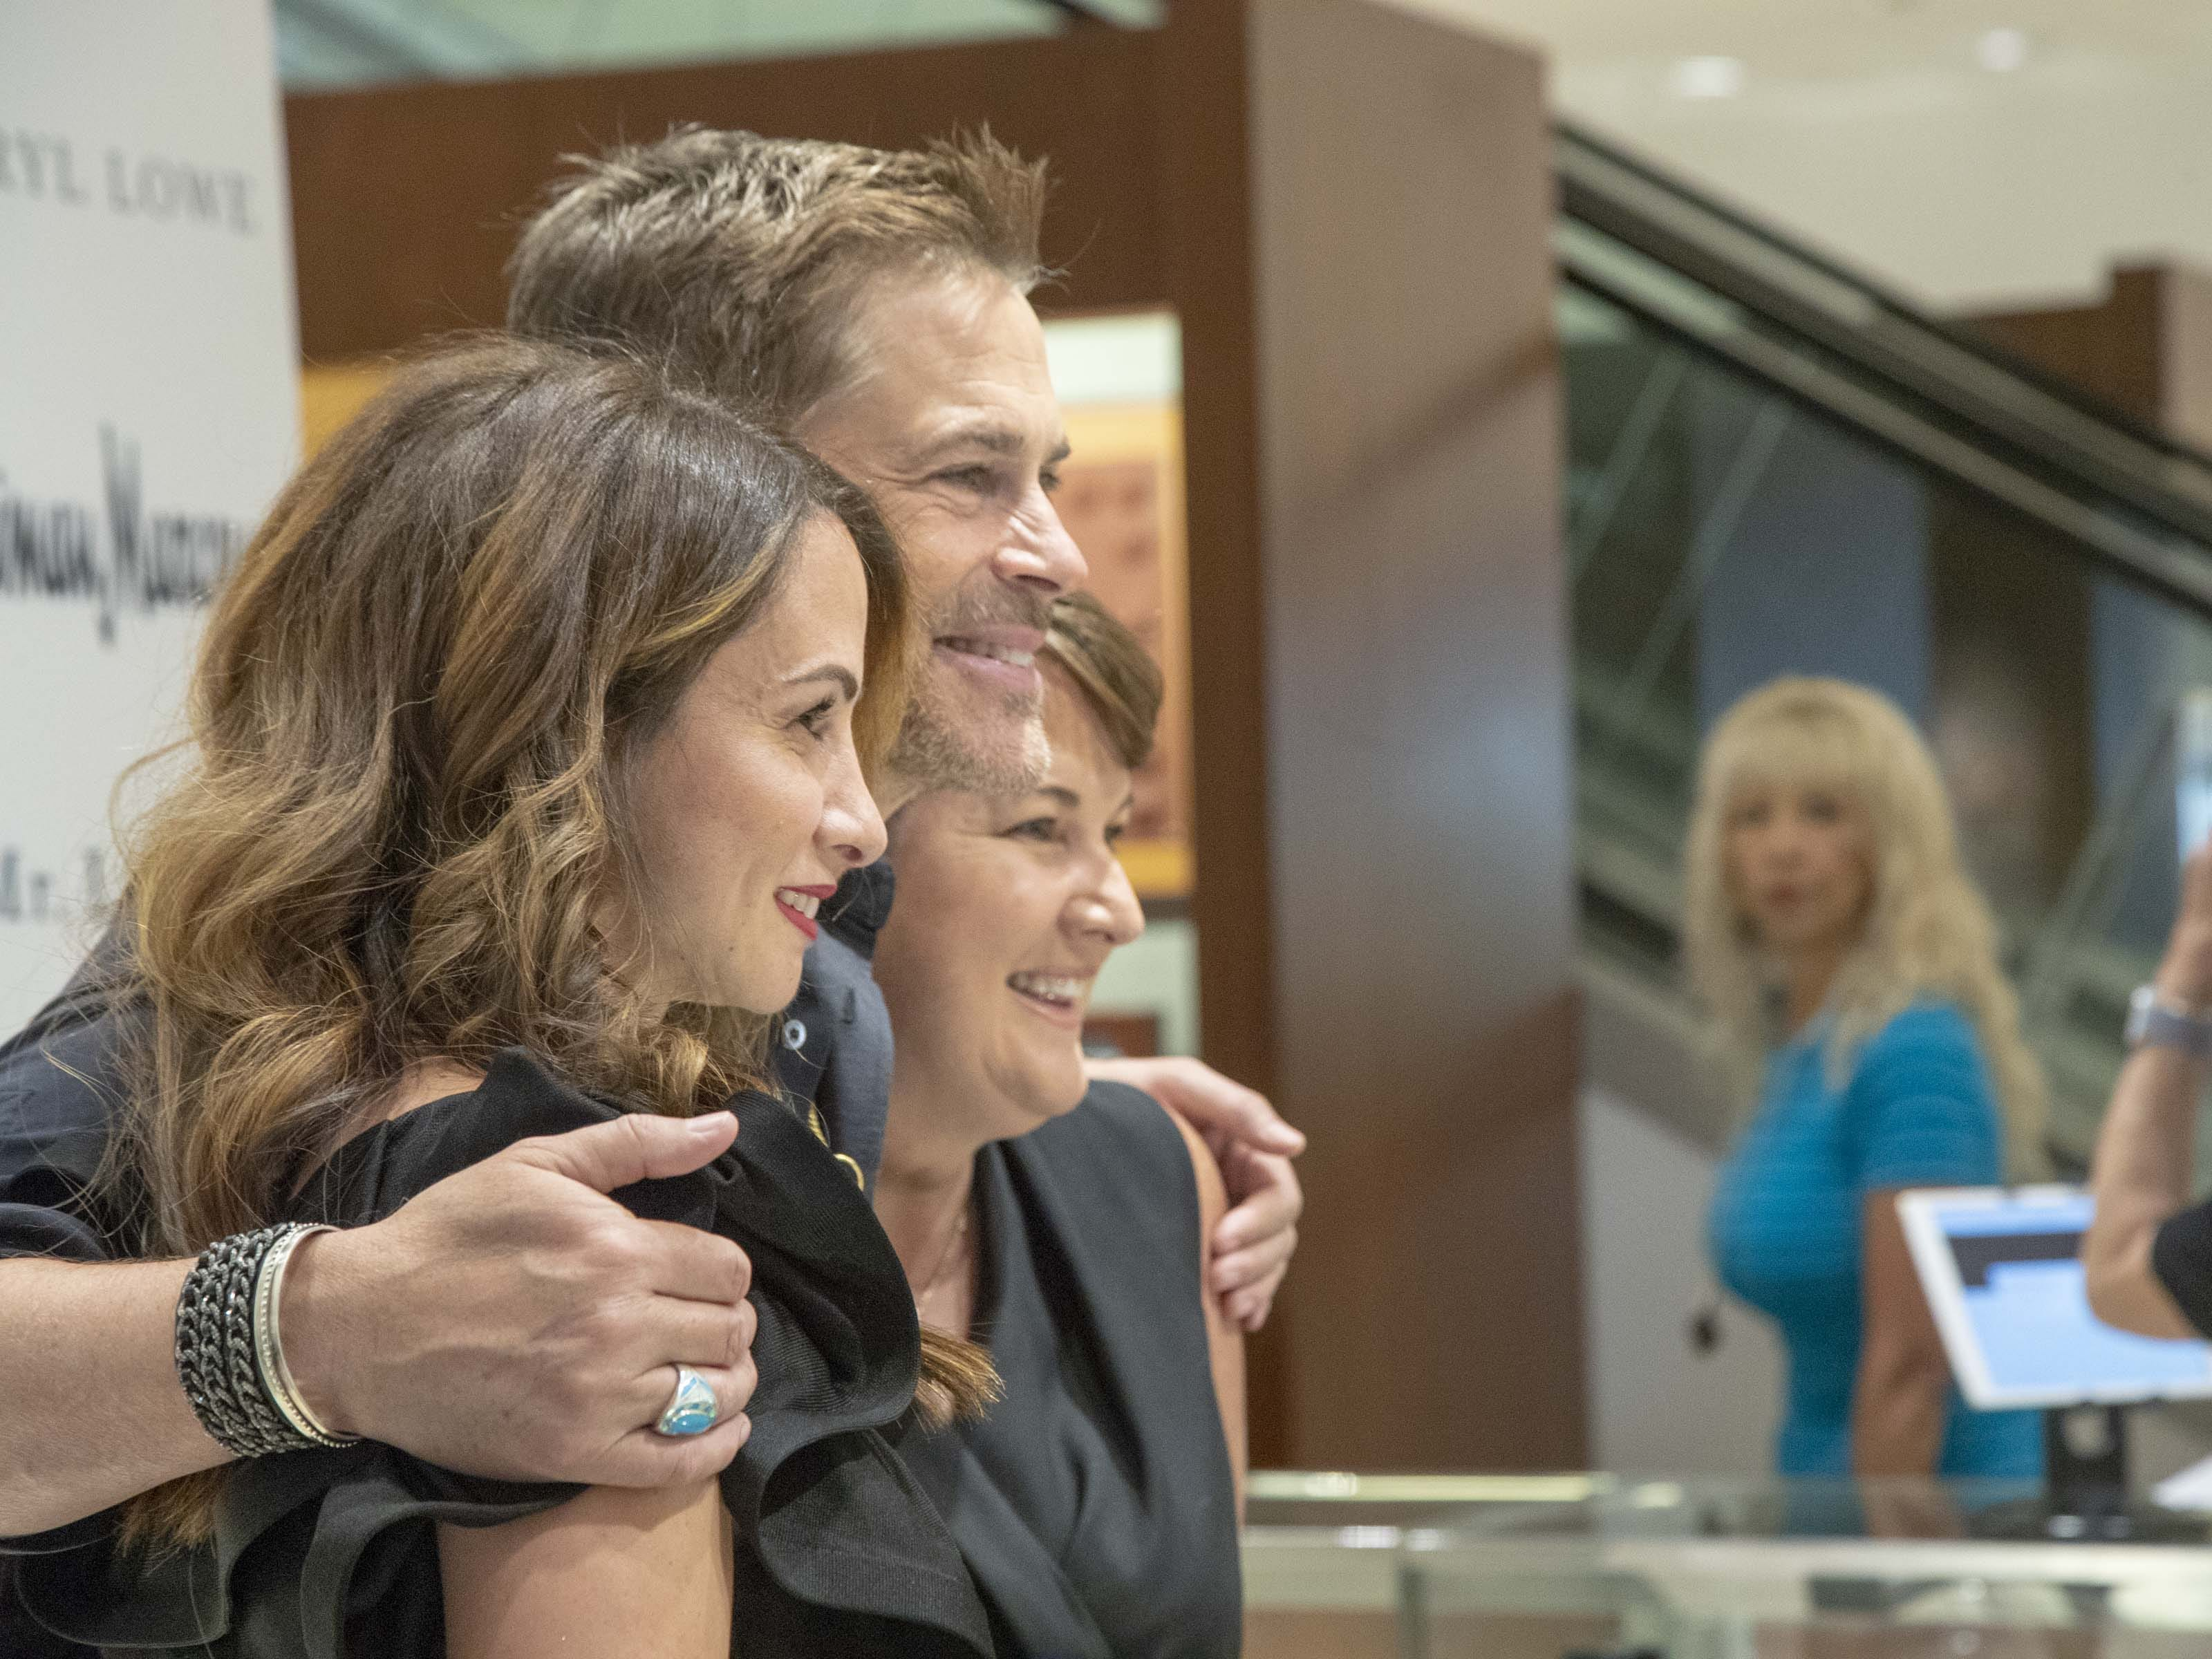 Fans meet actor Rob Lowe and his wife Sheryl Lowe during an event introducing their new men's jewelry collection at Scottsdale Fashion Square on March 28, 2019.